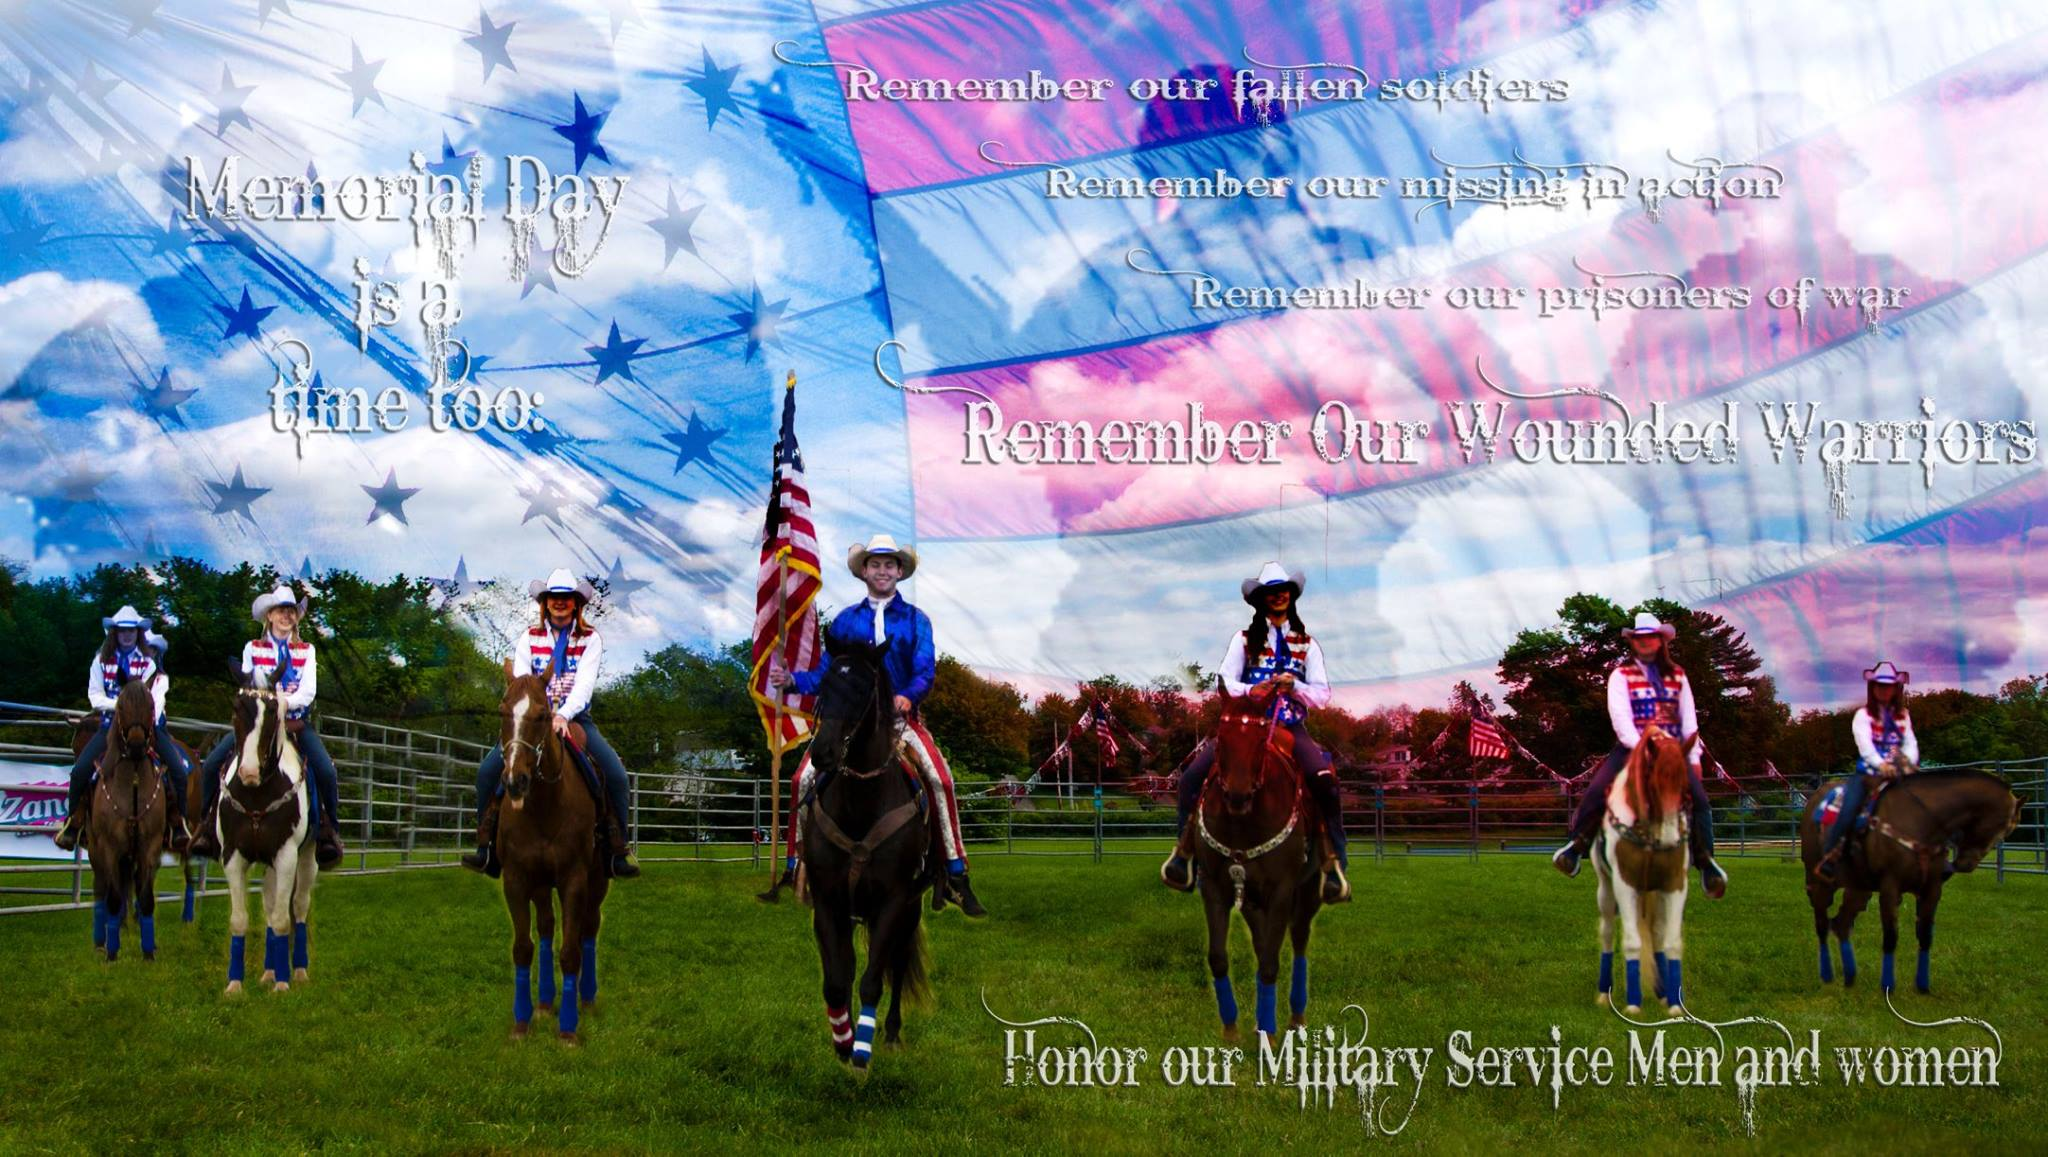 A performance image converted into a Memorial Day message.